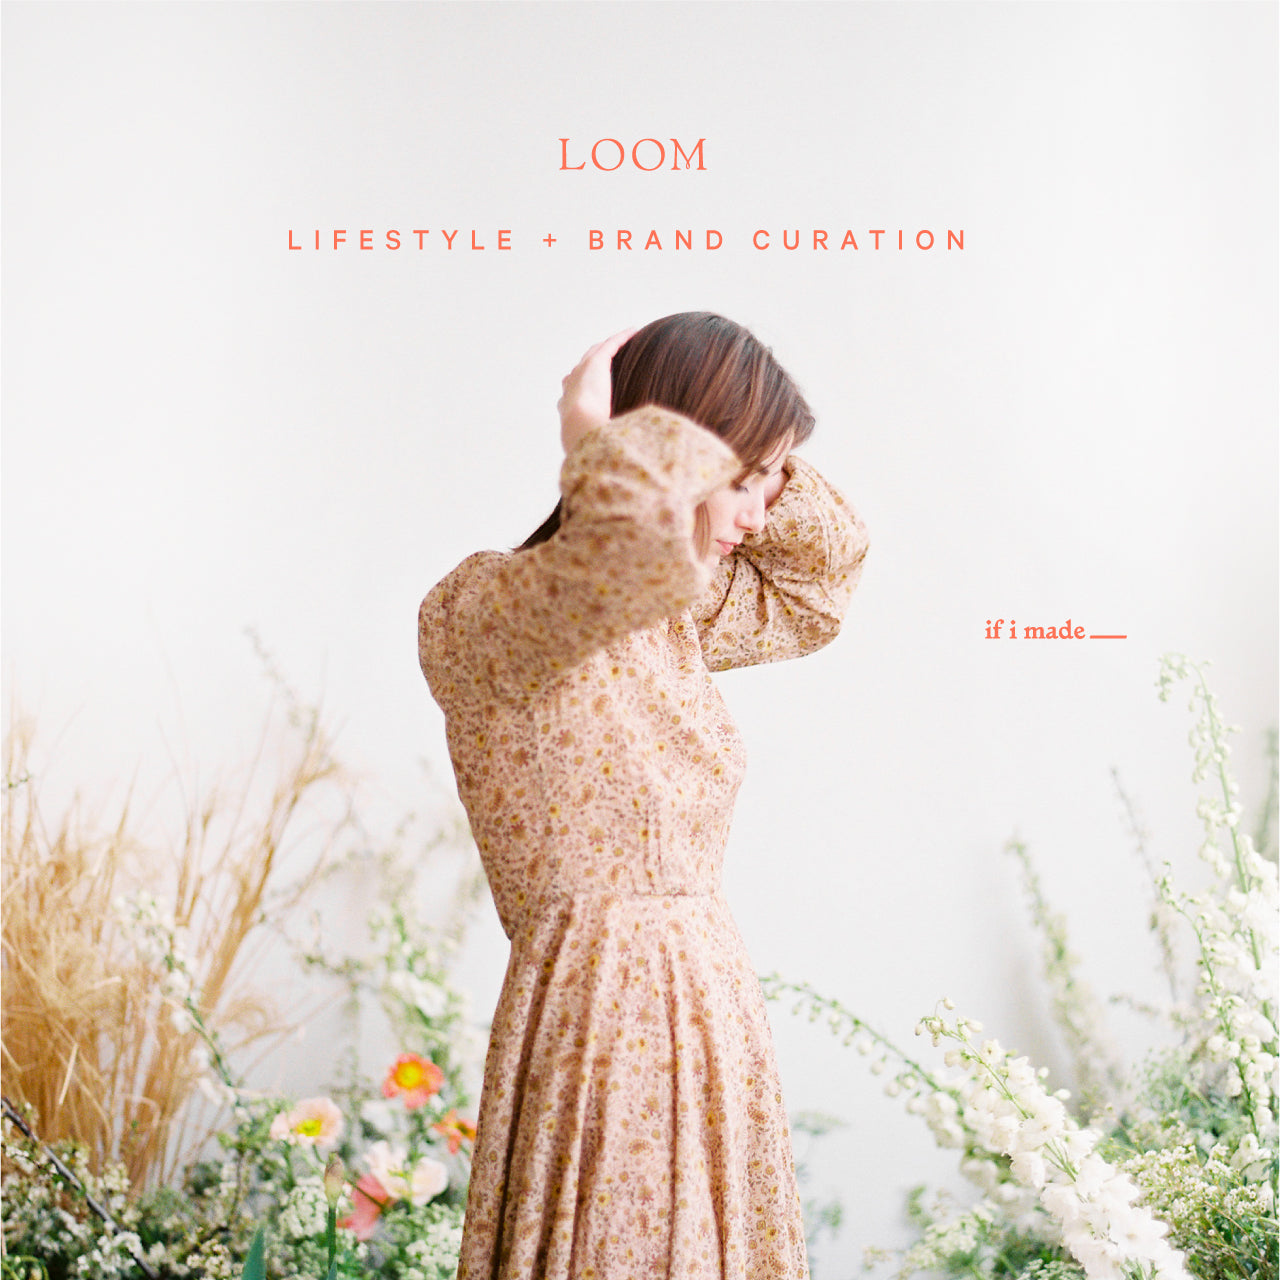 Retail Payment Plan: Loom: Lifestyle and Brand Curation with Ginny Au - 6 payments of $165